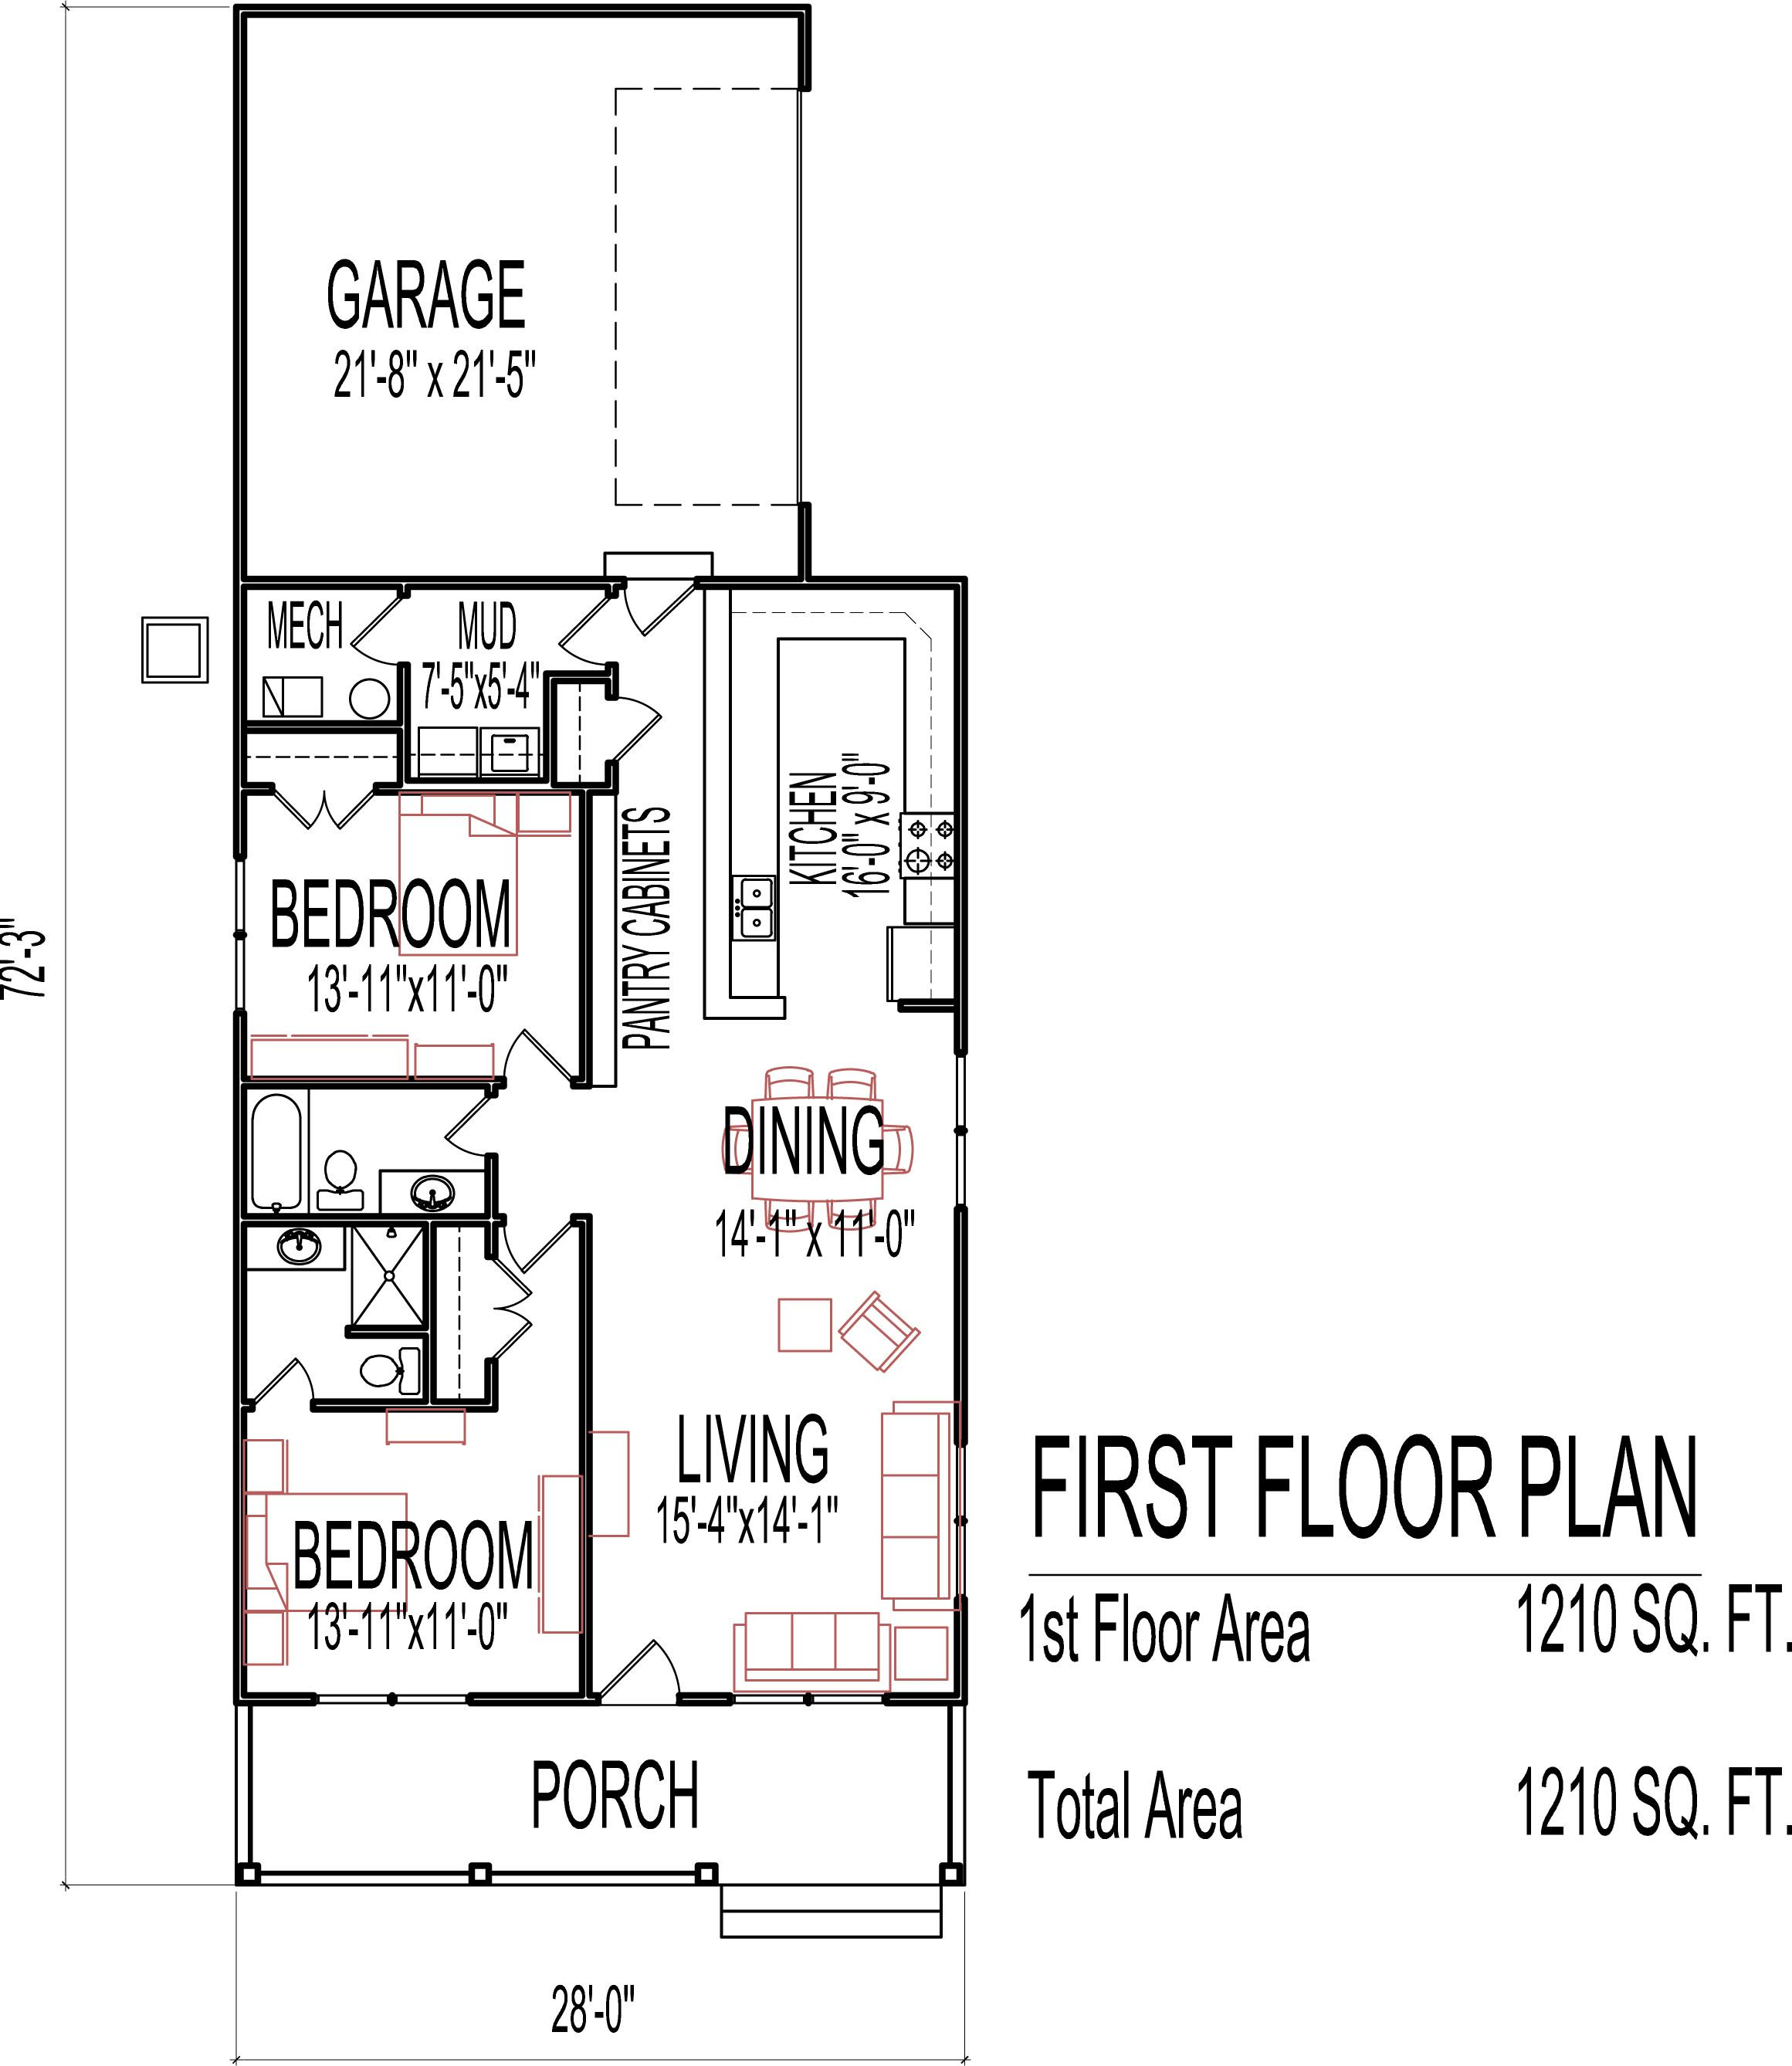 Small low cost economical 2 bedroom 2 bath 1200 sq ft One level home floor plans